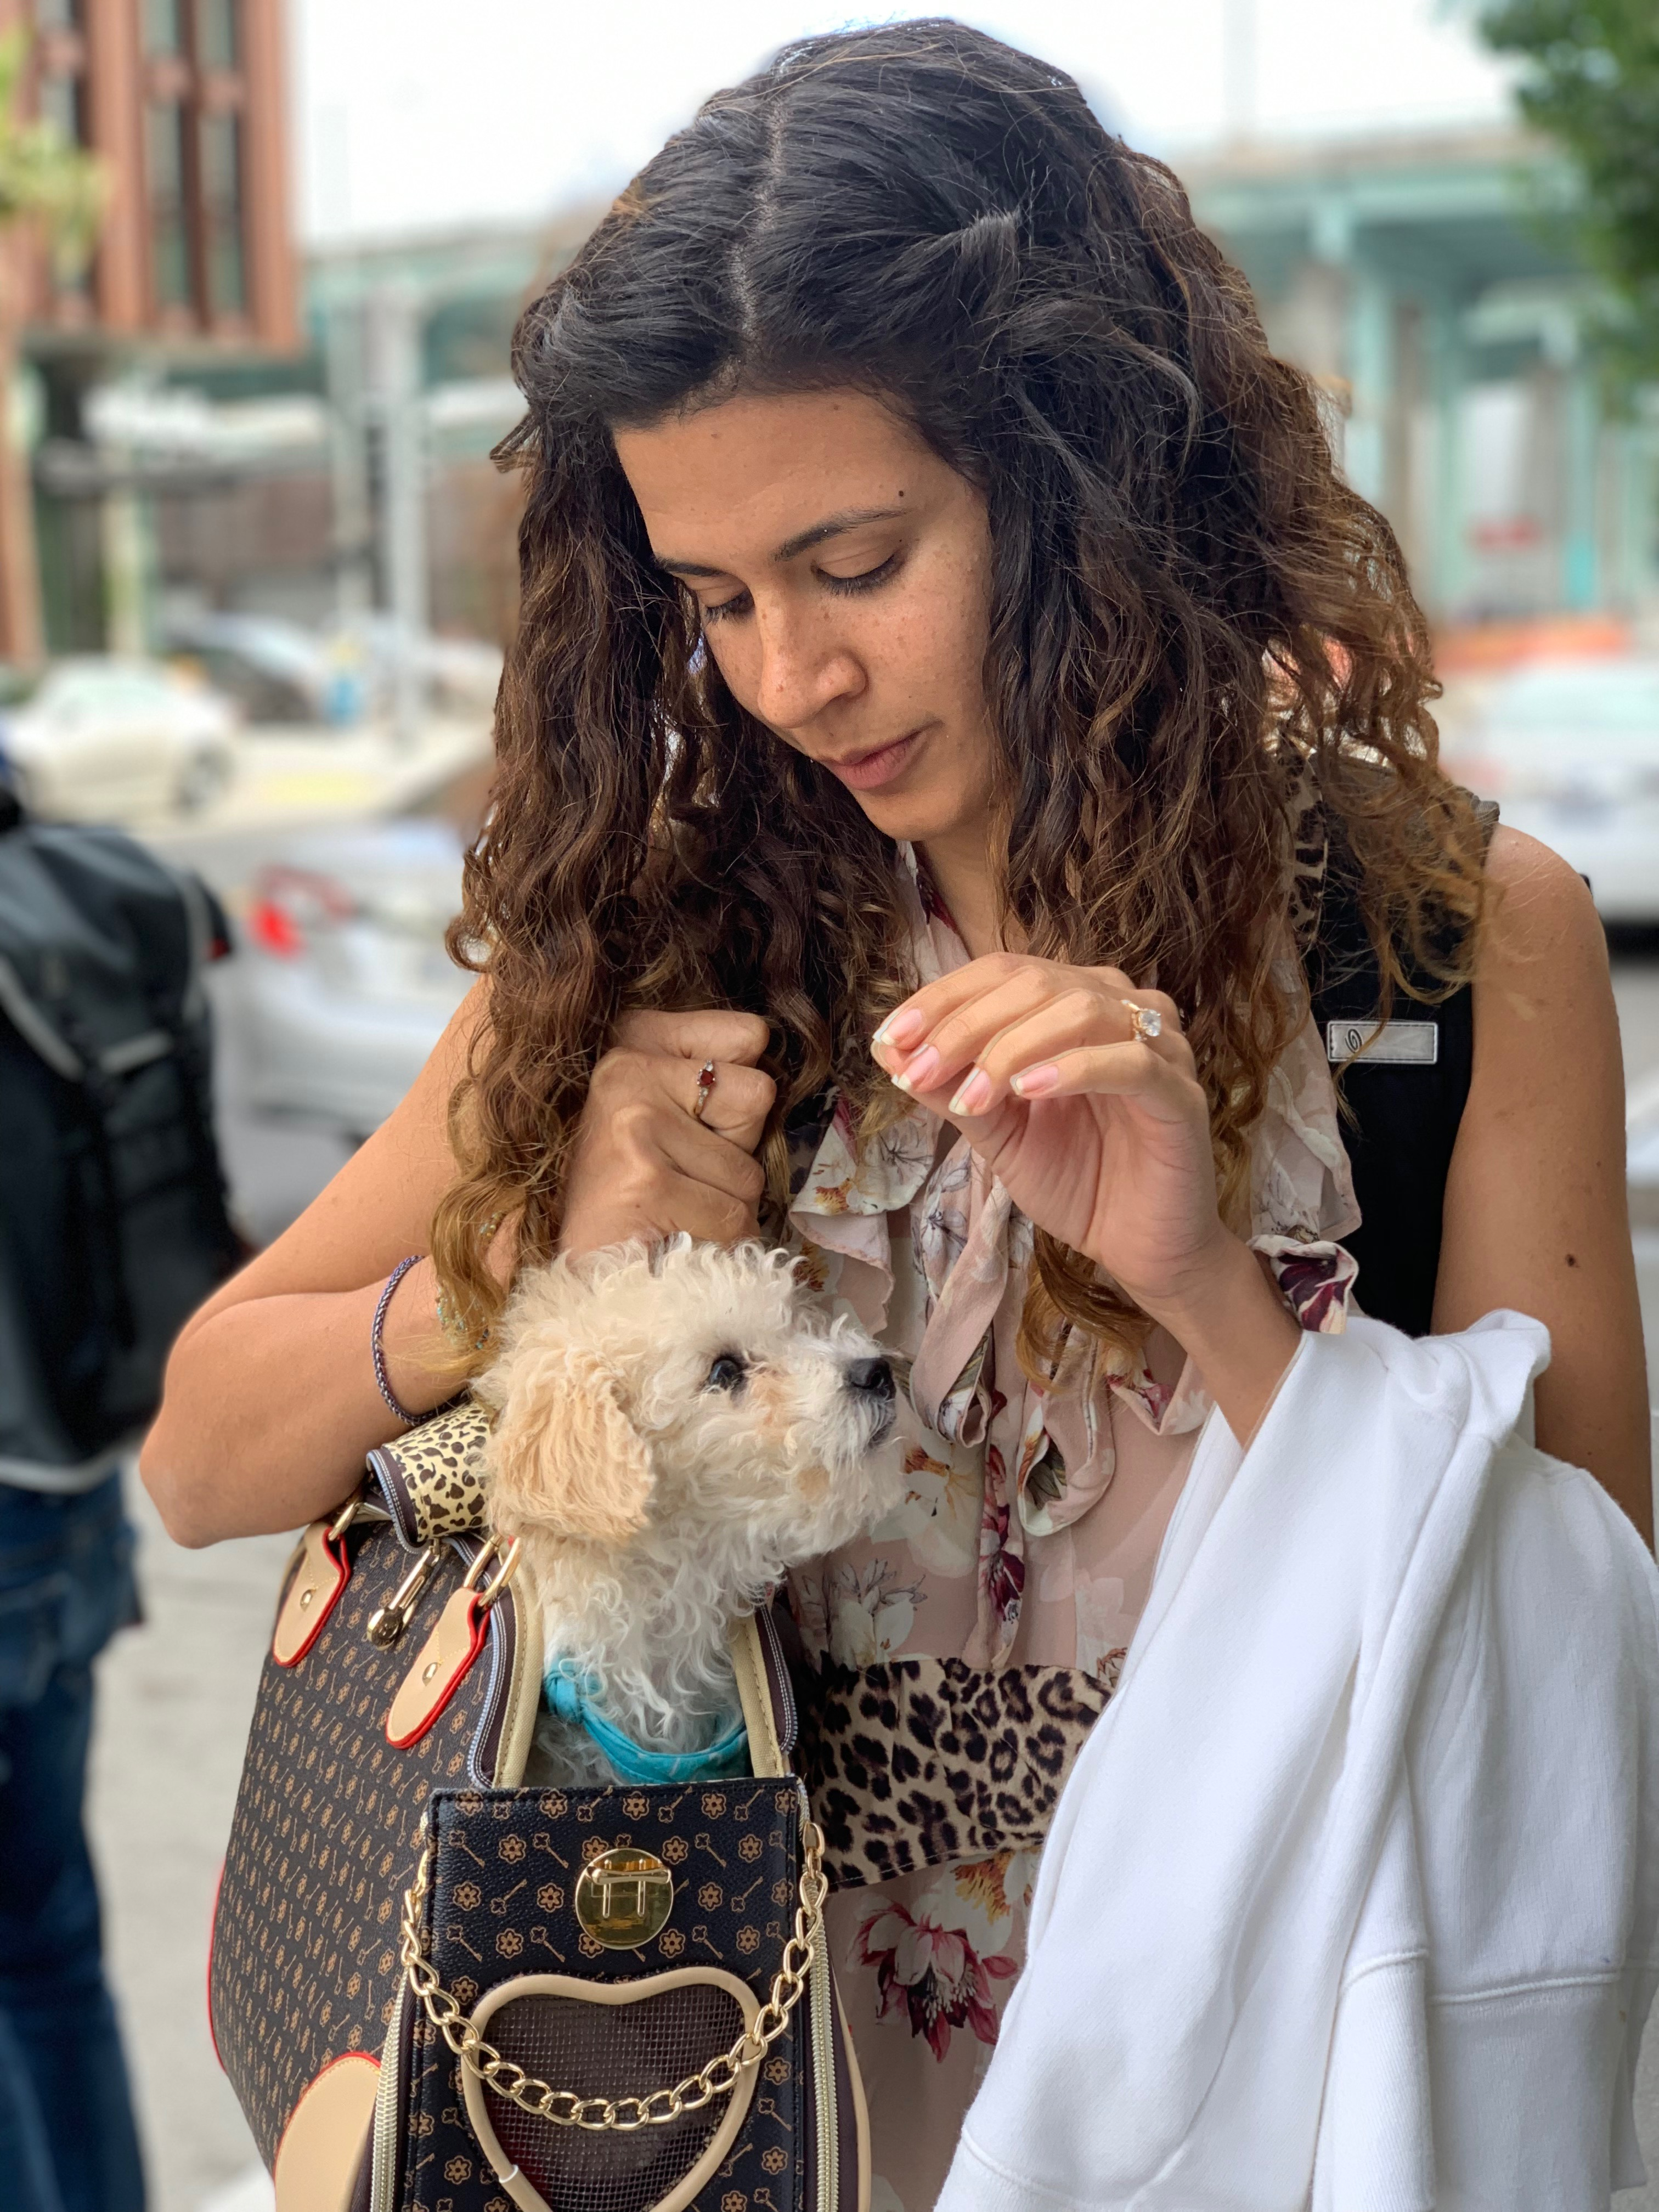 Woman With Cocker Spaniel Poodle Mix Puppy In Bag